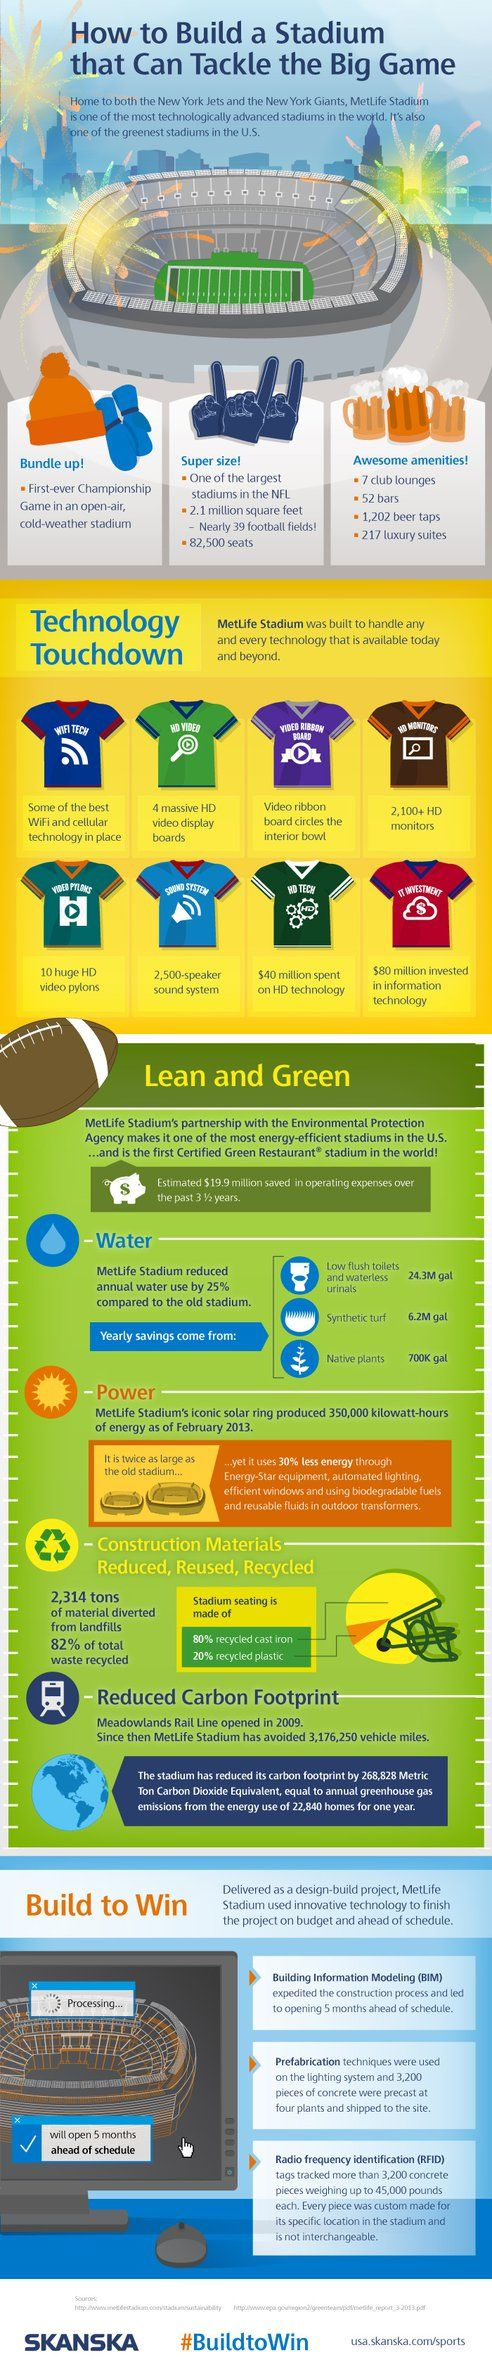 """MetLife Stadium, home of this year's Super Bowl, may be """"The greenest stadium in the US"""" : TreeHugger"""